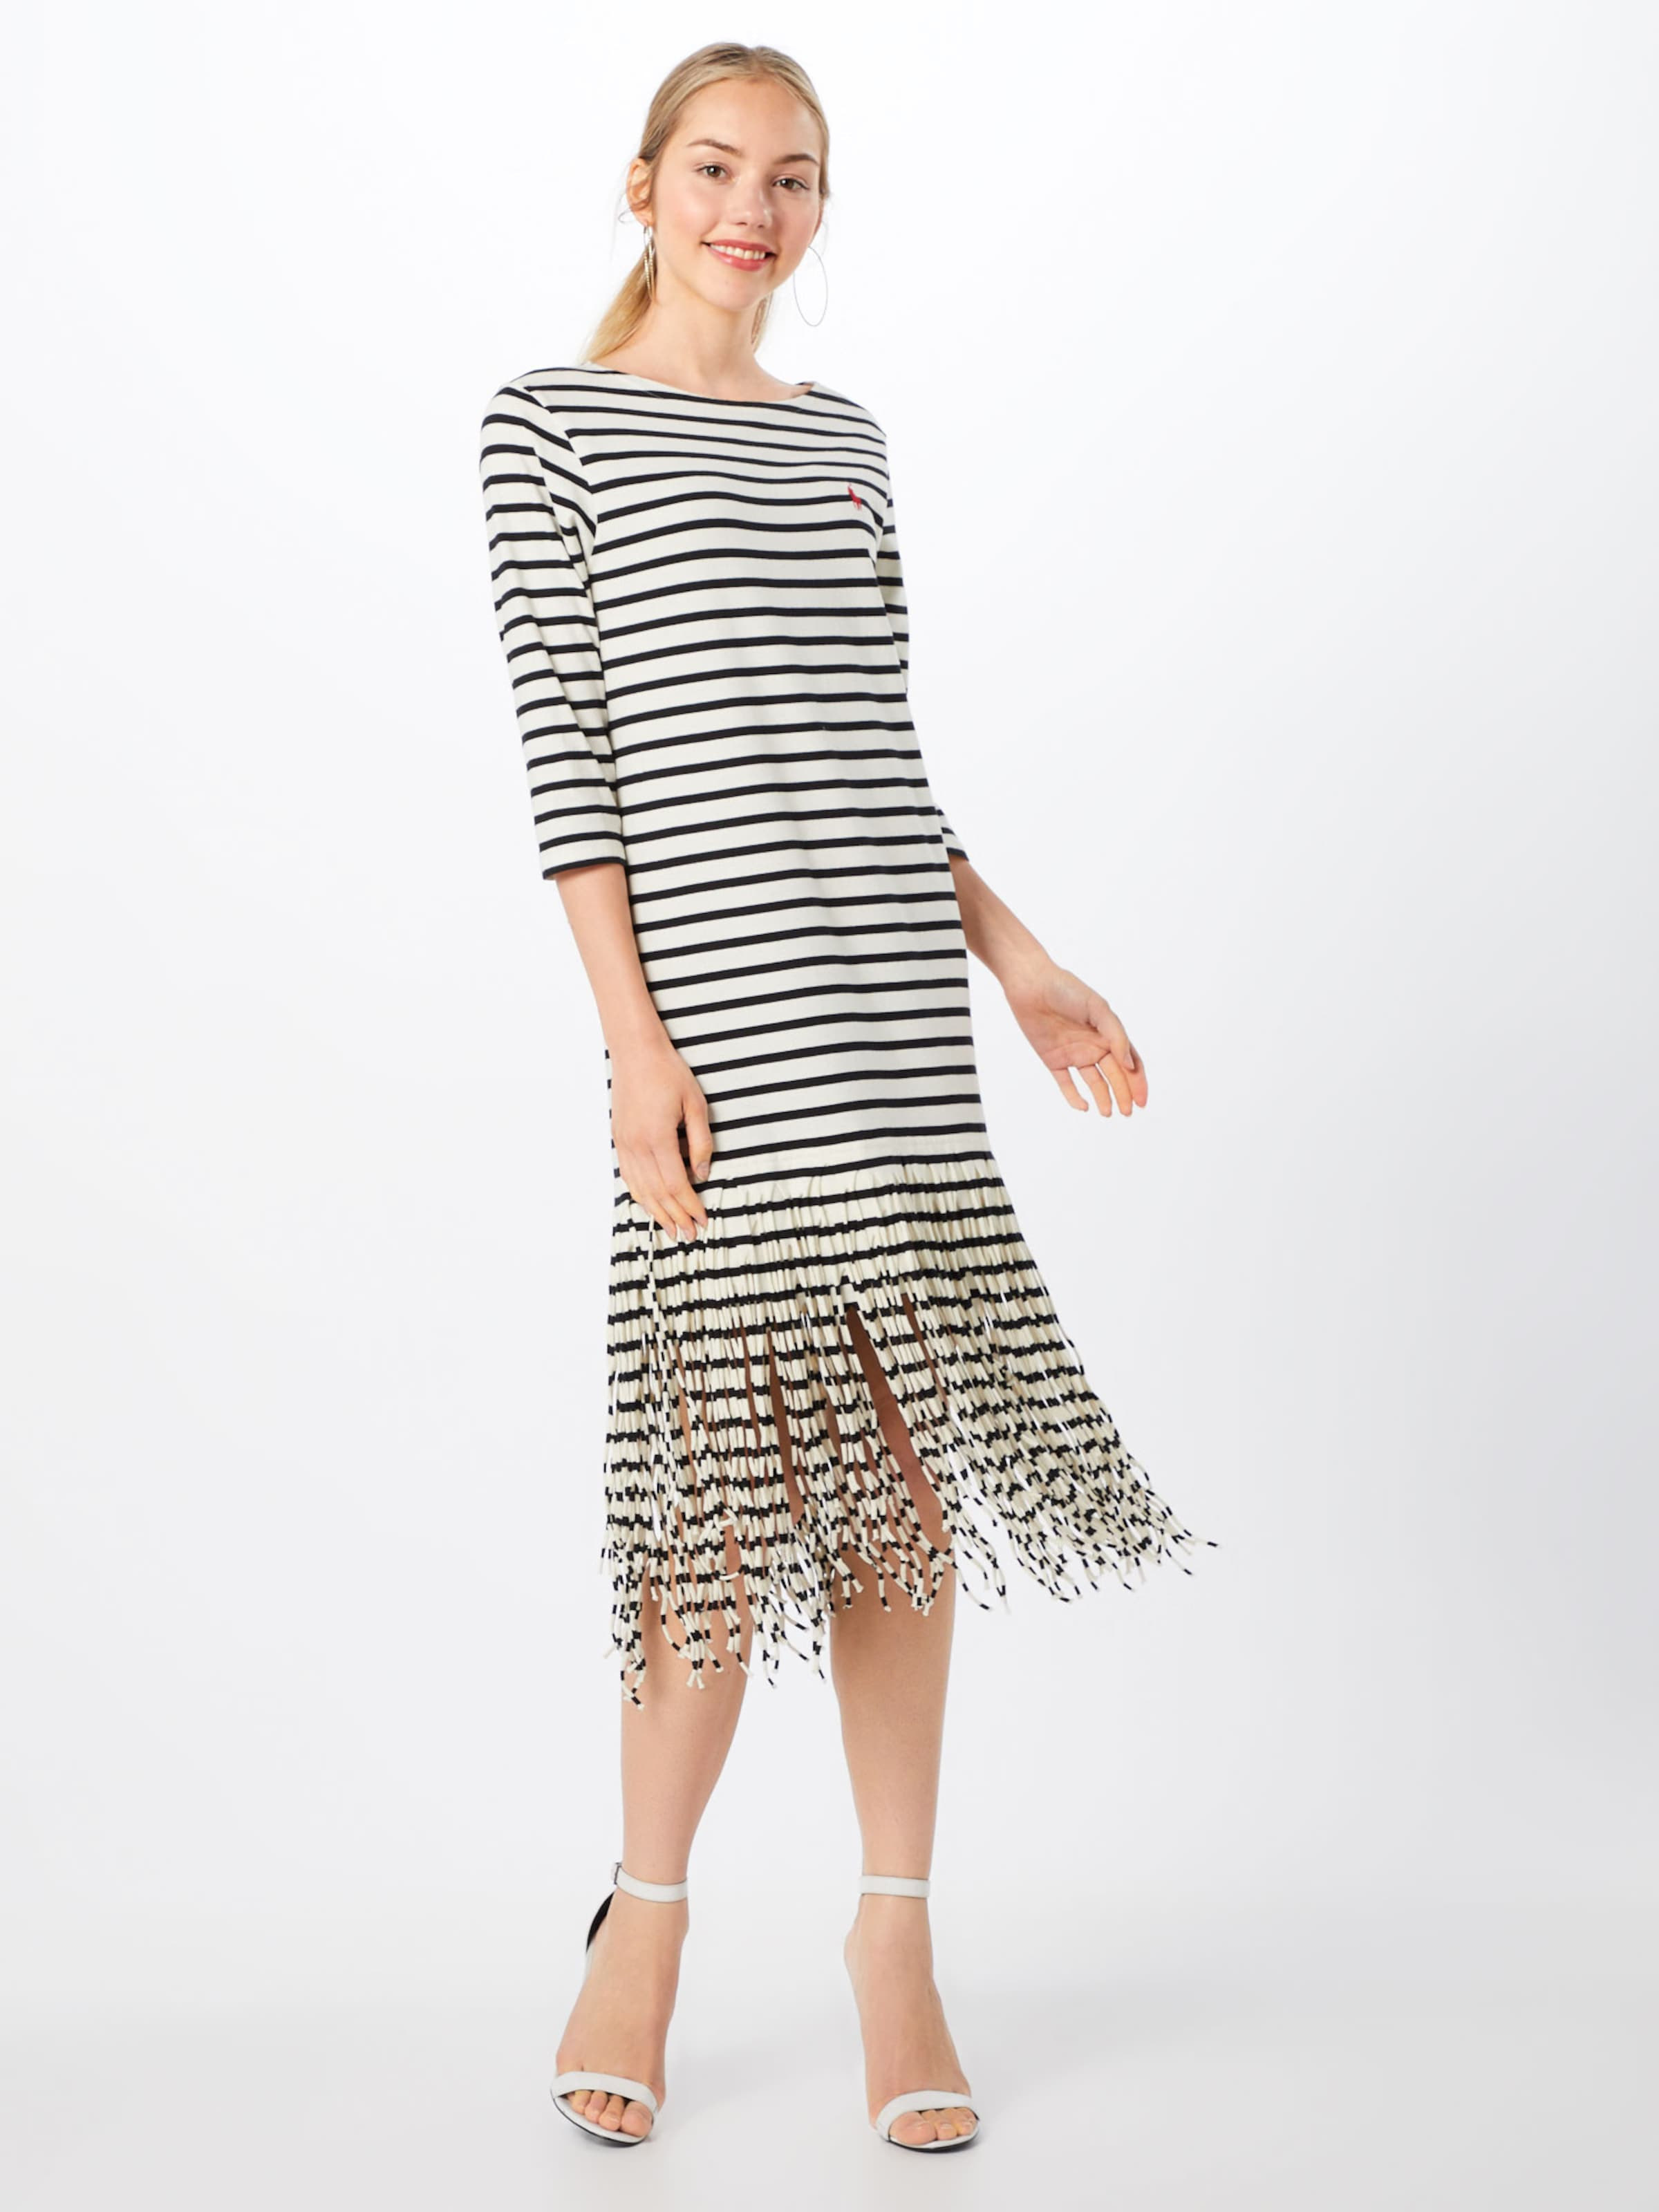 4 In Sleeve Polo Dress' Weiß Lauren 3 Ralph Kleider Dress casual 'fringe pUzqVGLSM